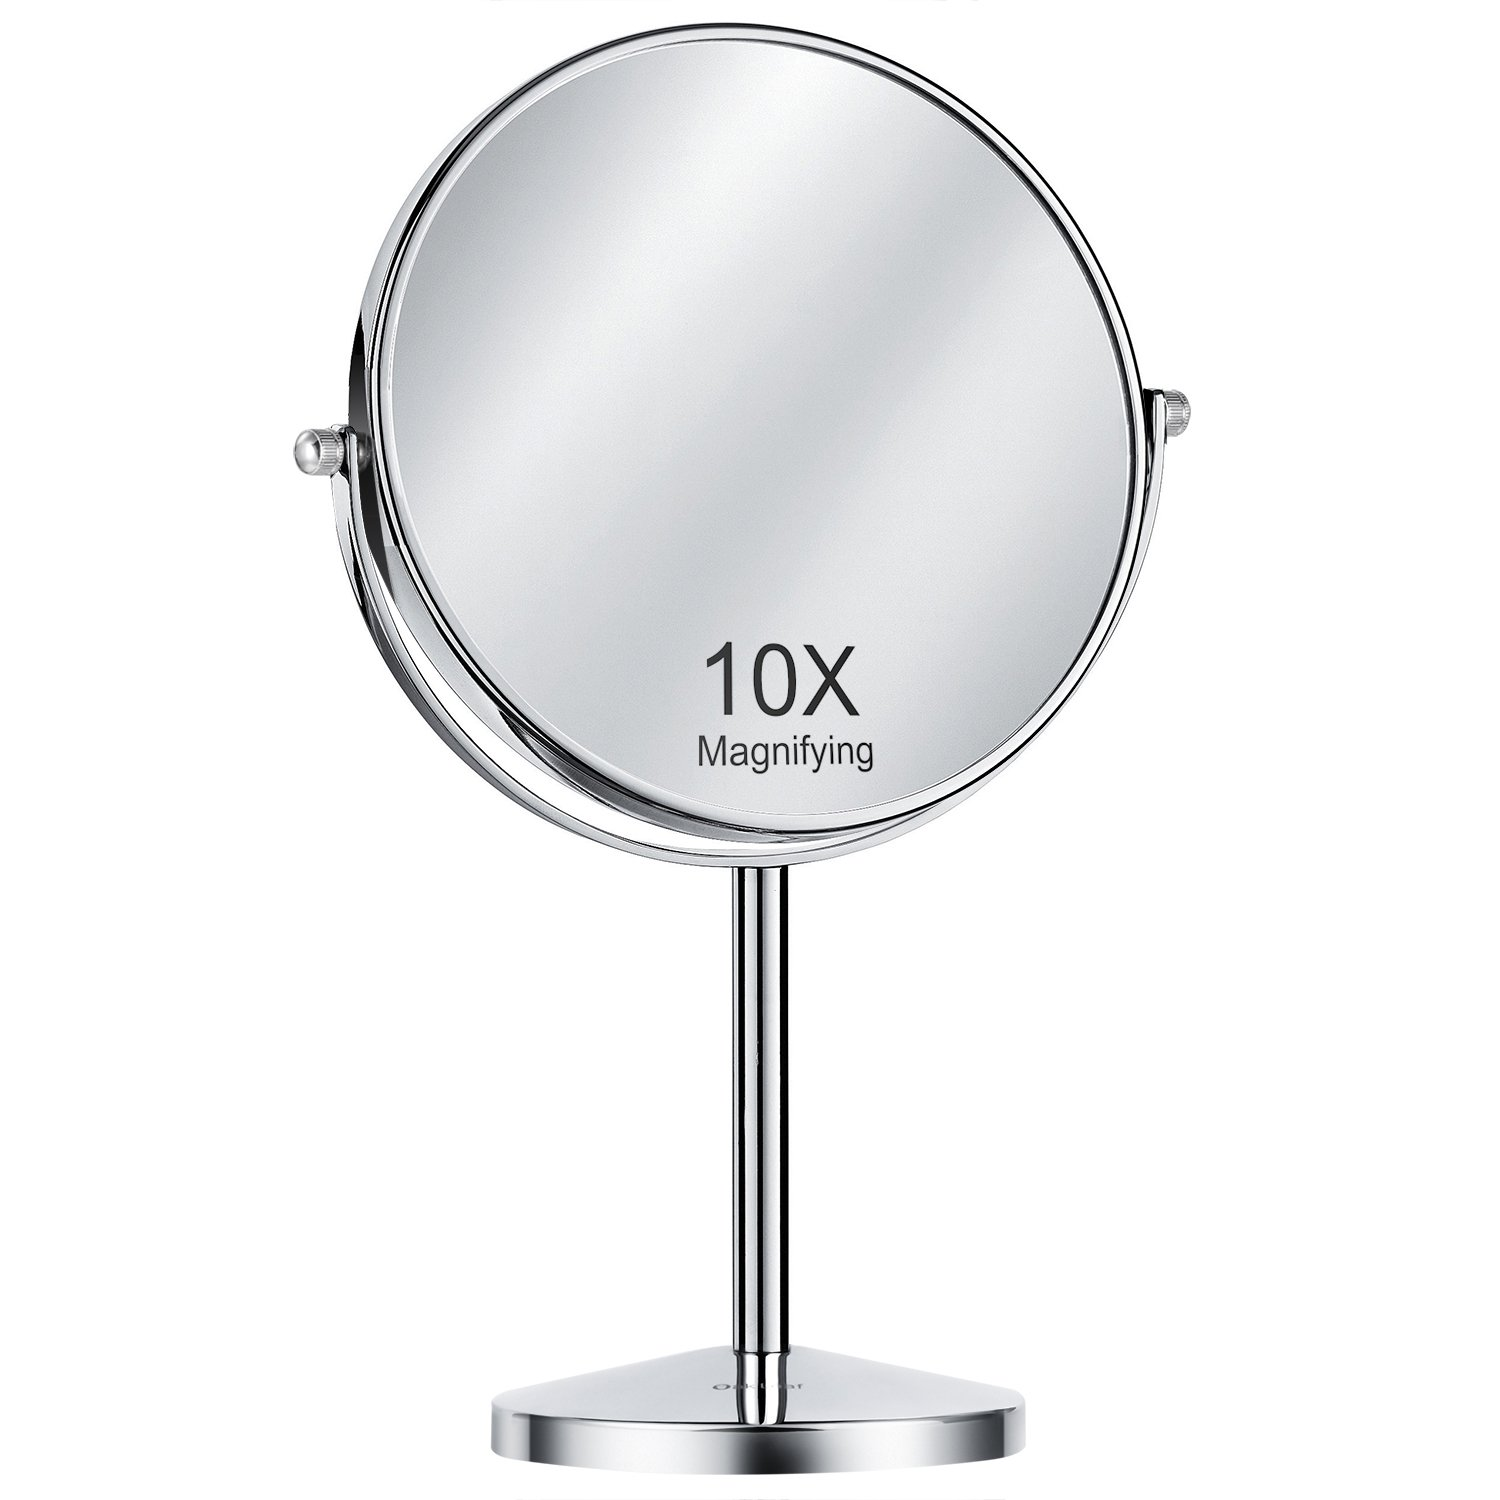 Magnifying Makeup Mirror, Oak Leaf Double-sided 1x/10X Magnification Tabletop Swivel Vanity Mirror, 8 Inch